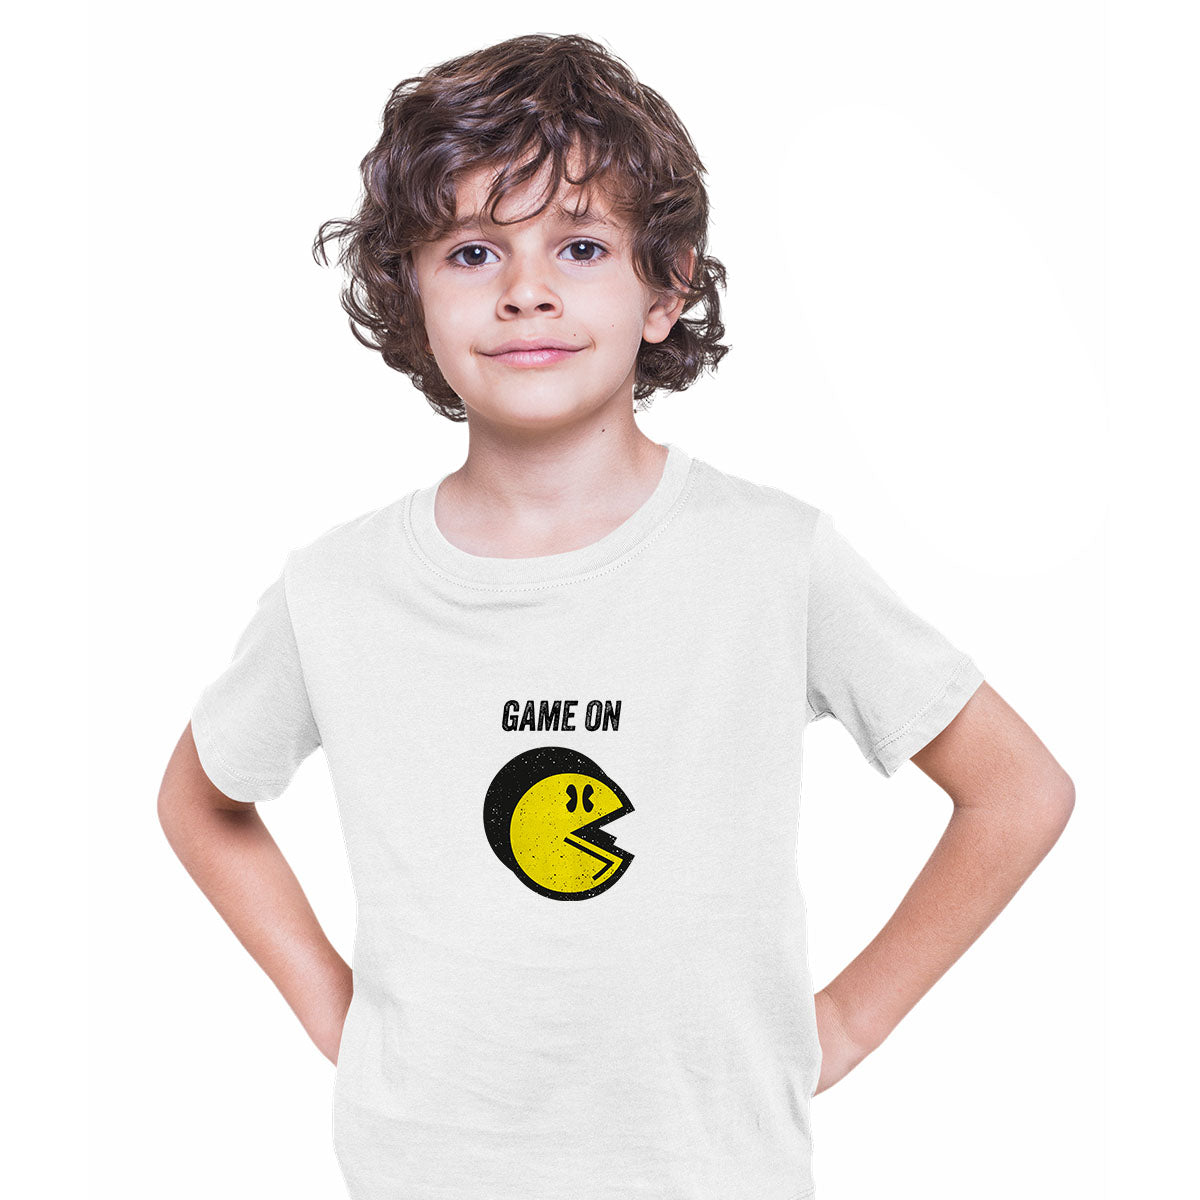 Vintage PACMAN T-SHIRT for Kids Cool Retro 70s 80s Arcade PC Video Games White